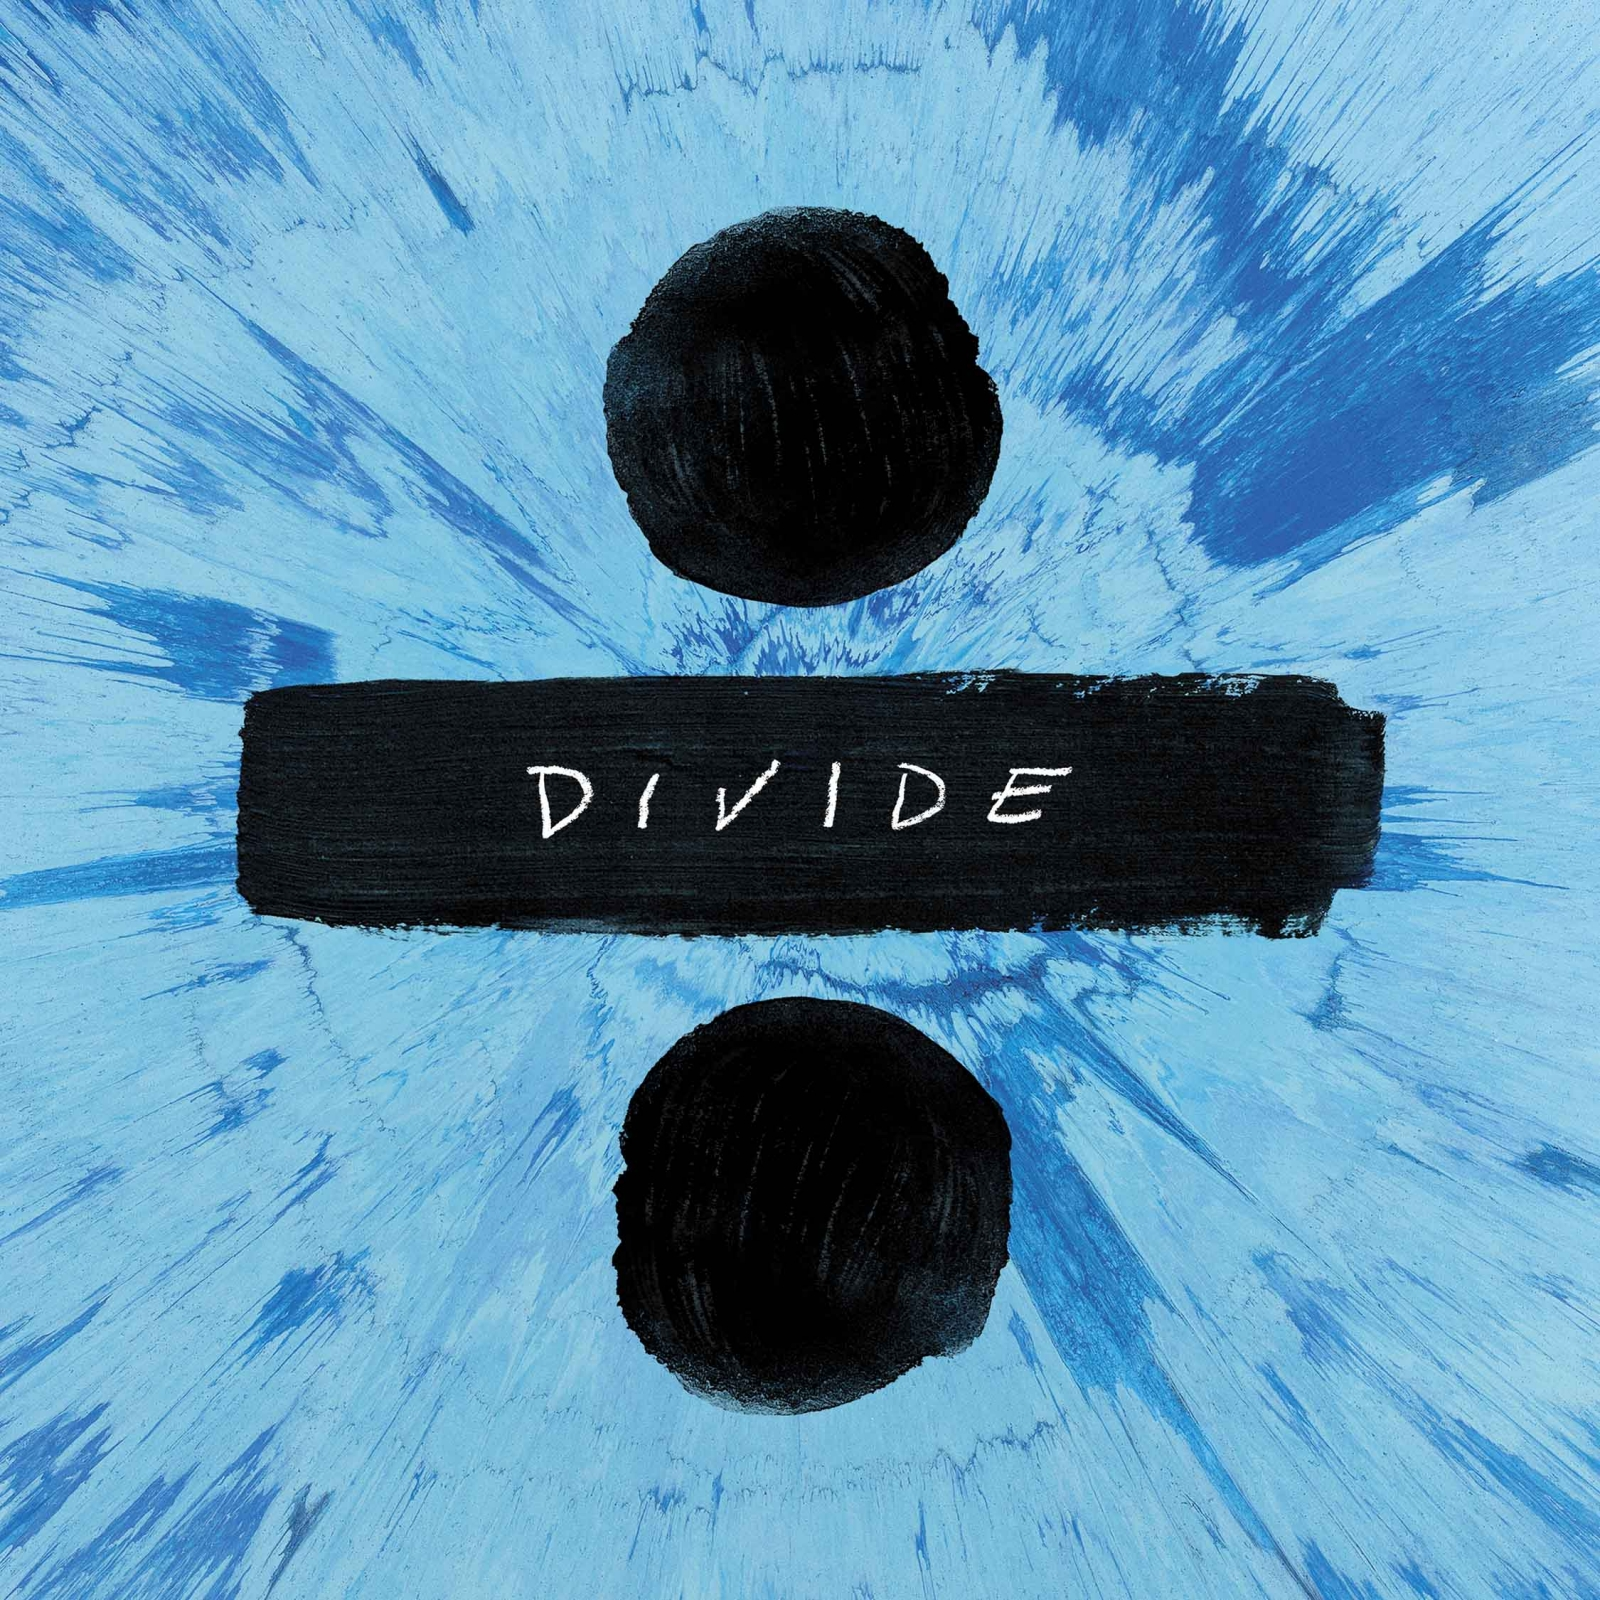 ed sheeran album review divide is romantic reflective. Black Bedroom Furniture Sets. Home Design Ideas